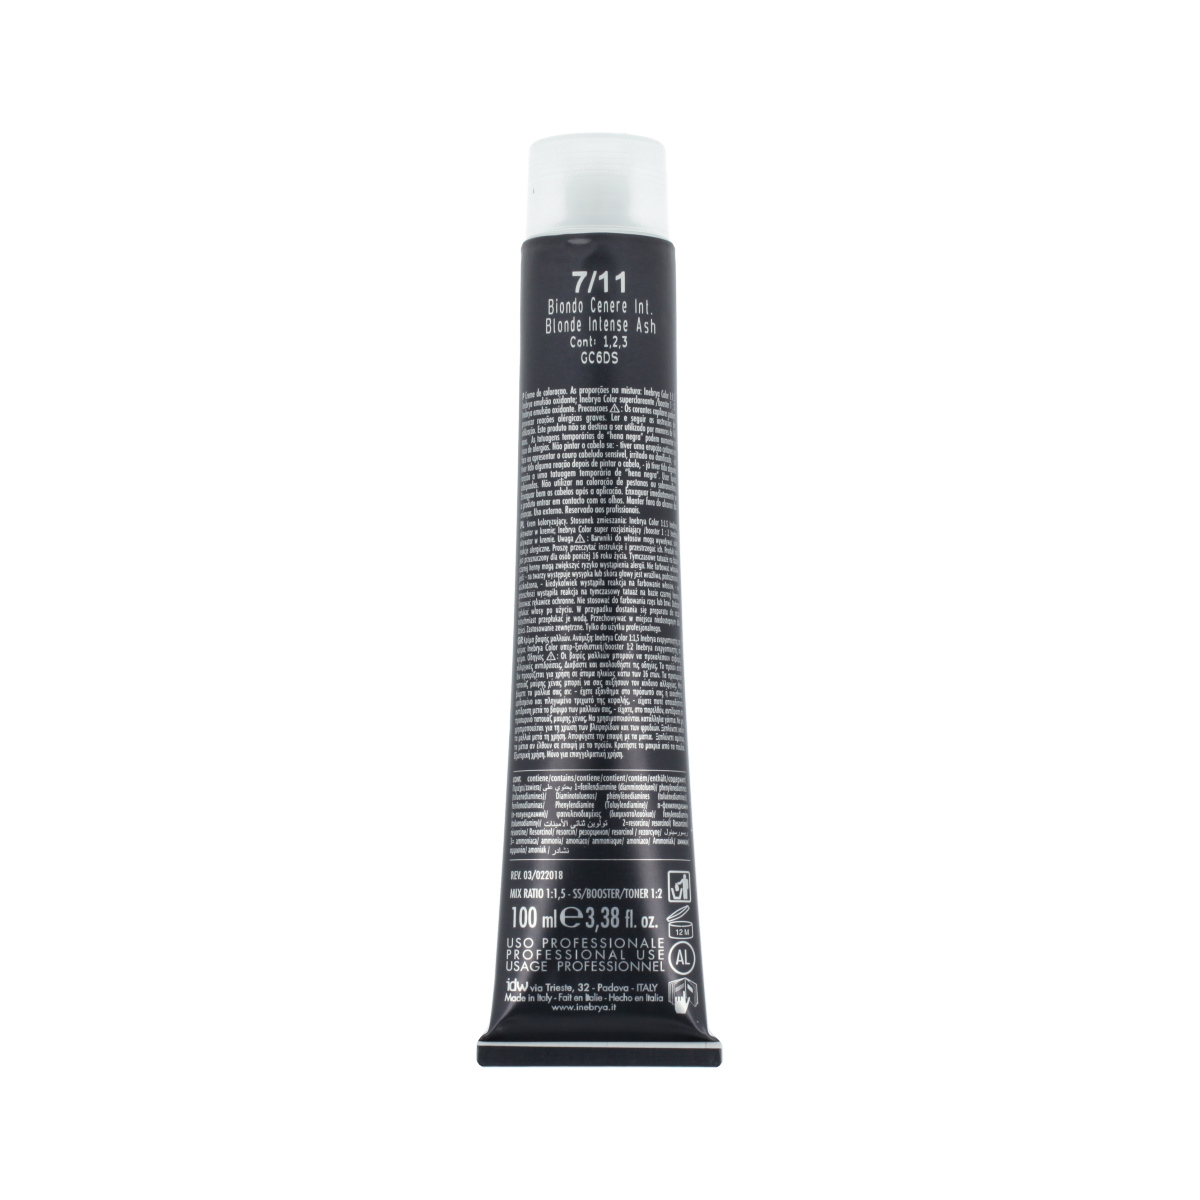 Inebrya Color Ash Intense (7/11 Blonde Intense Ash) 100 ml 94627